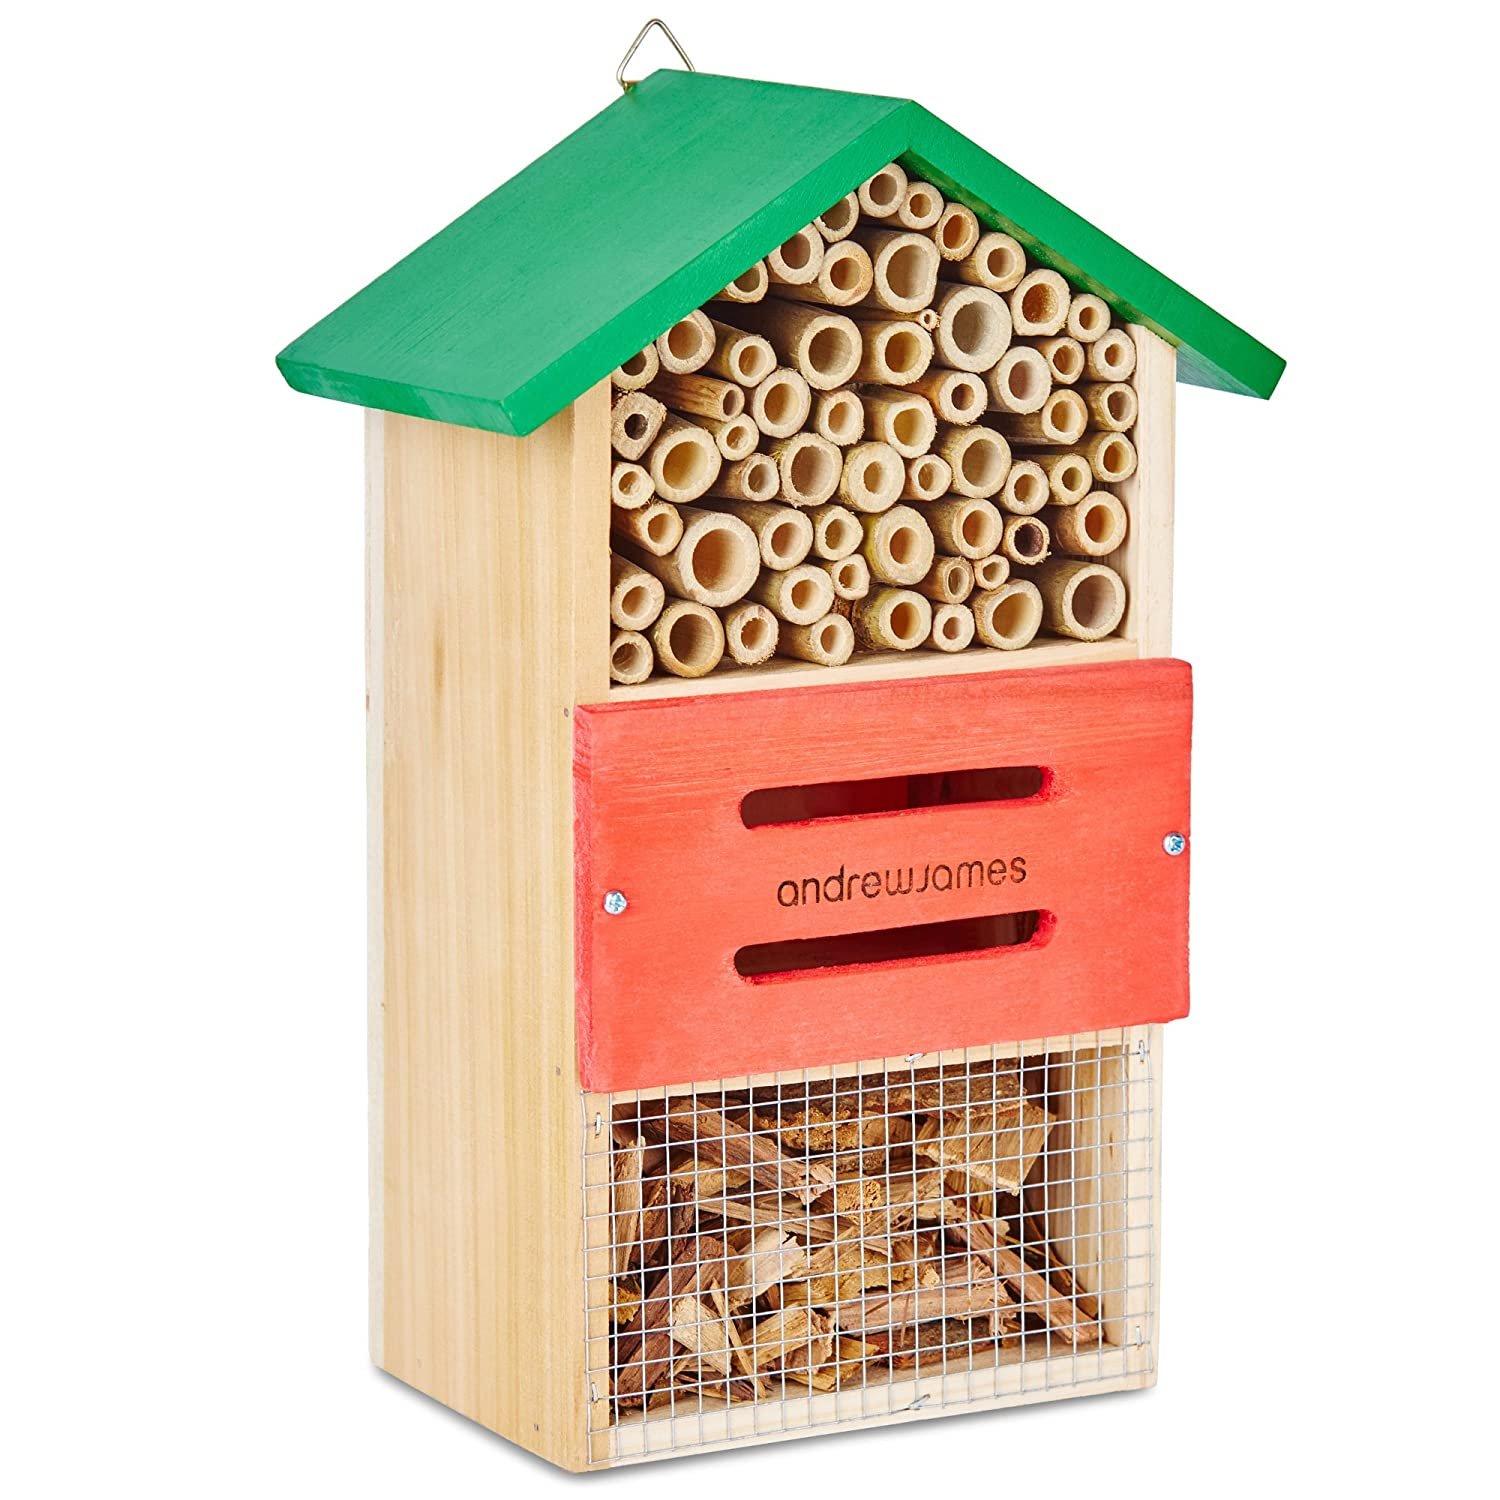 Andrew James Wooden Bug Hotel Insect and Bee House for the Garden to Attract Pollinating Insects like Solitary Bees and Natural Pest Controllers | Weather Resistant 5060415765395